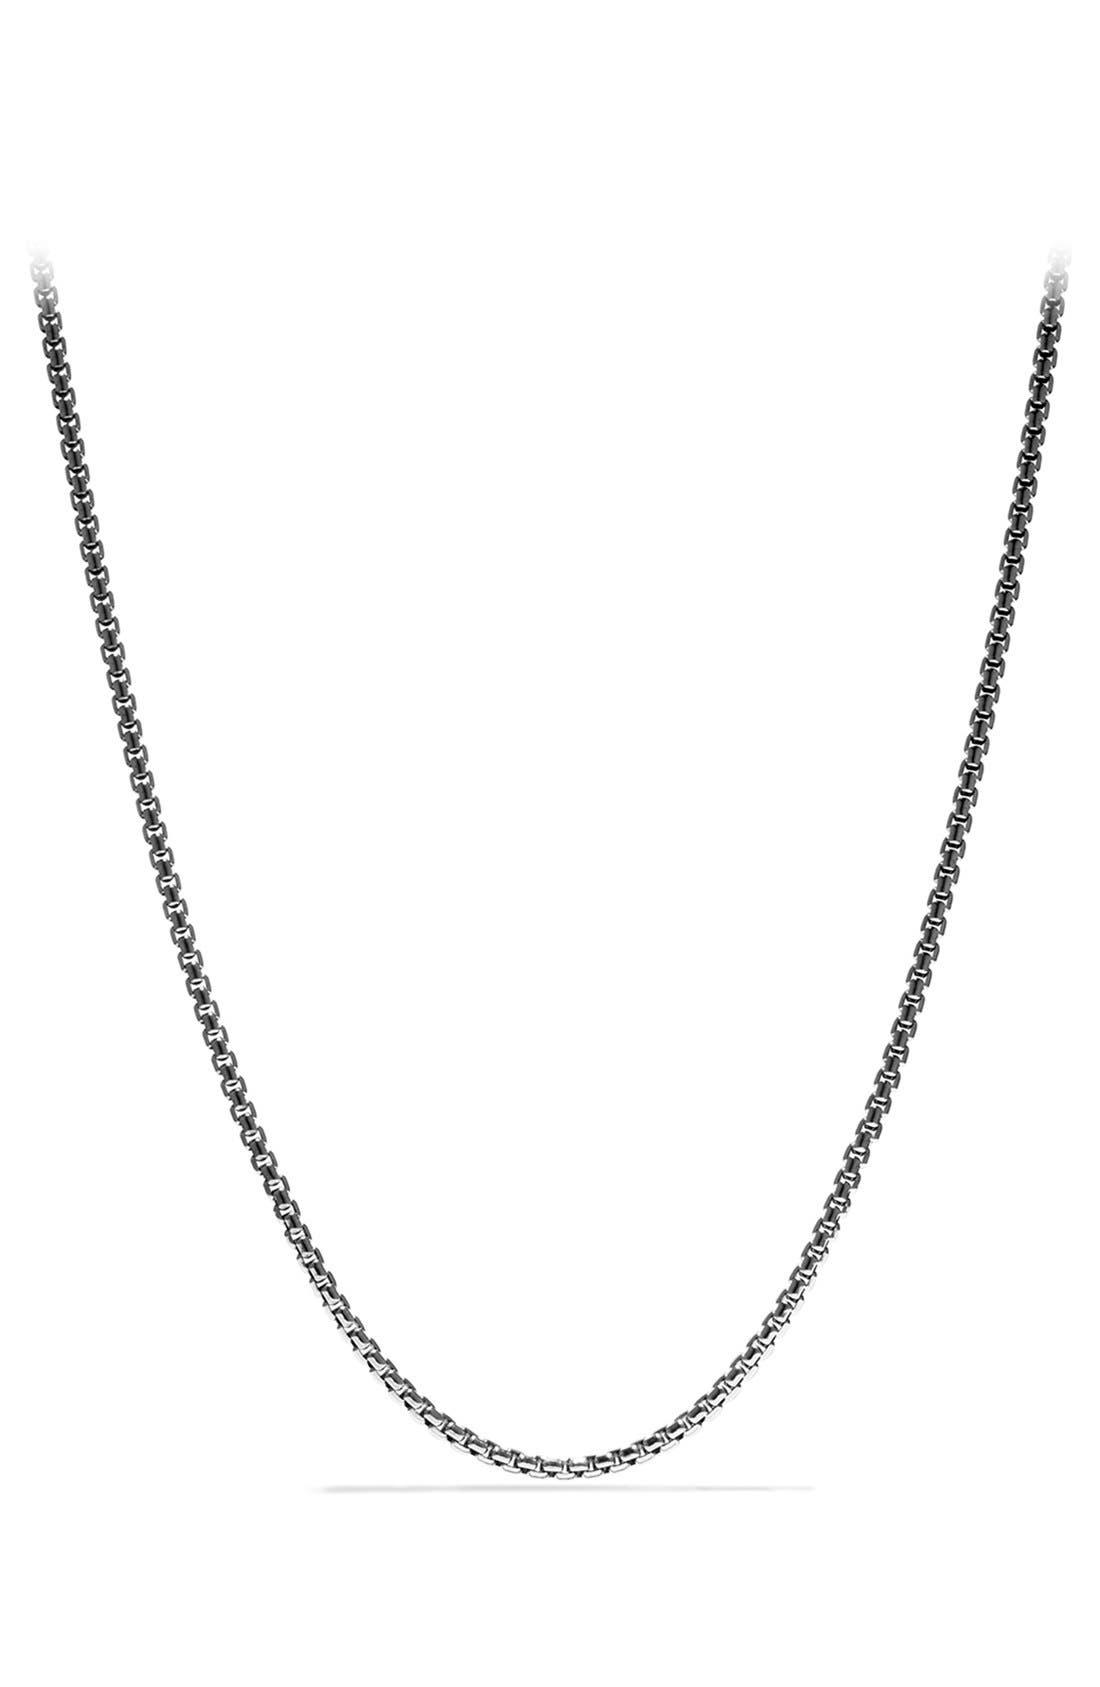 'Chain' Medium Box Chain Necklace,                         Main,                         color, Silver